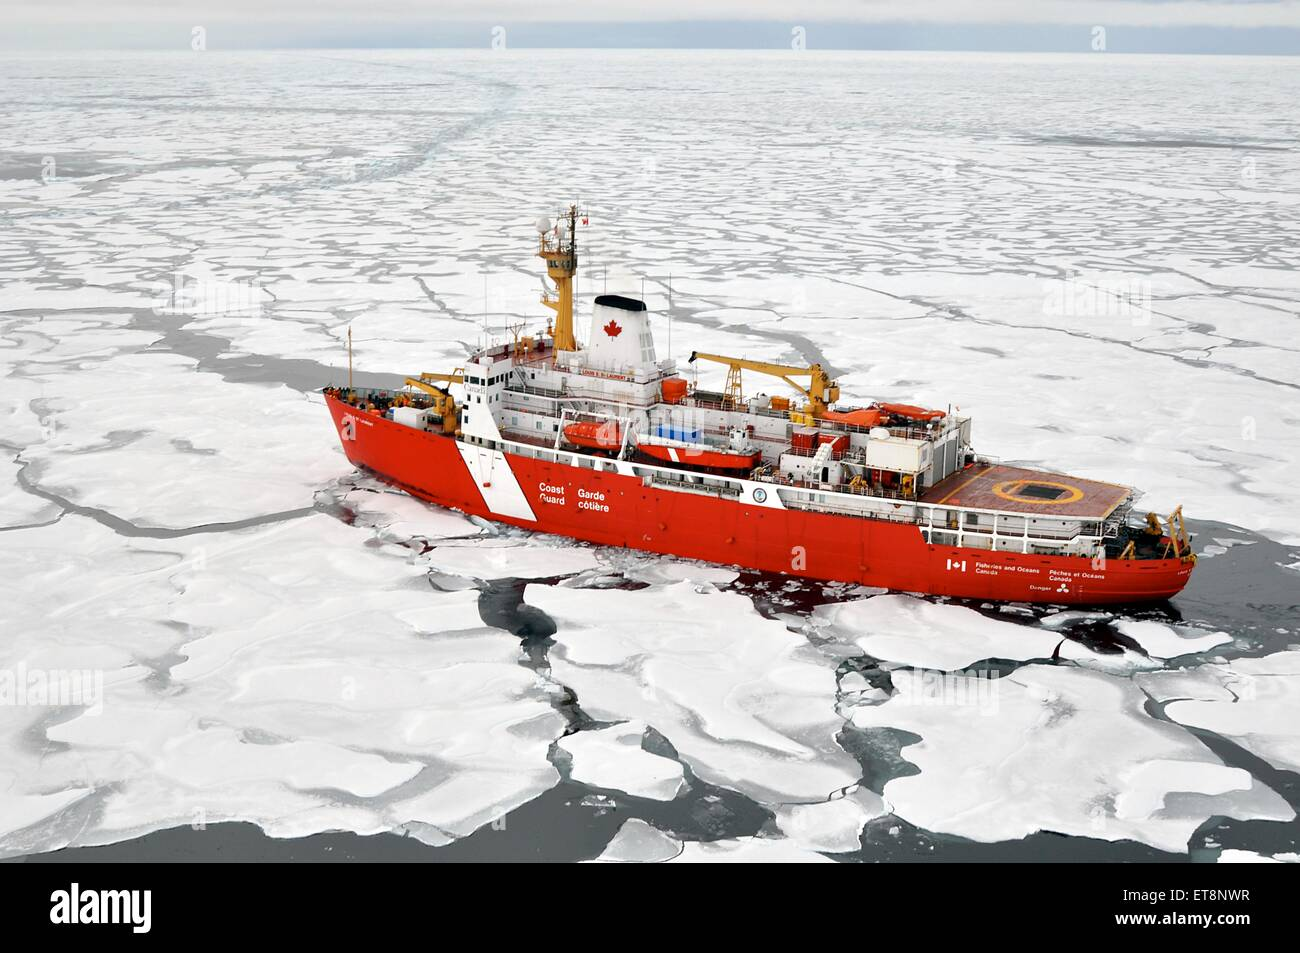 US Coast Guard Cutter Healy breaks ice September 5, 2009 in the Arctic. The Healy is the newest and most technologically - Stock Image